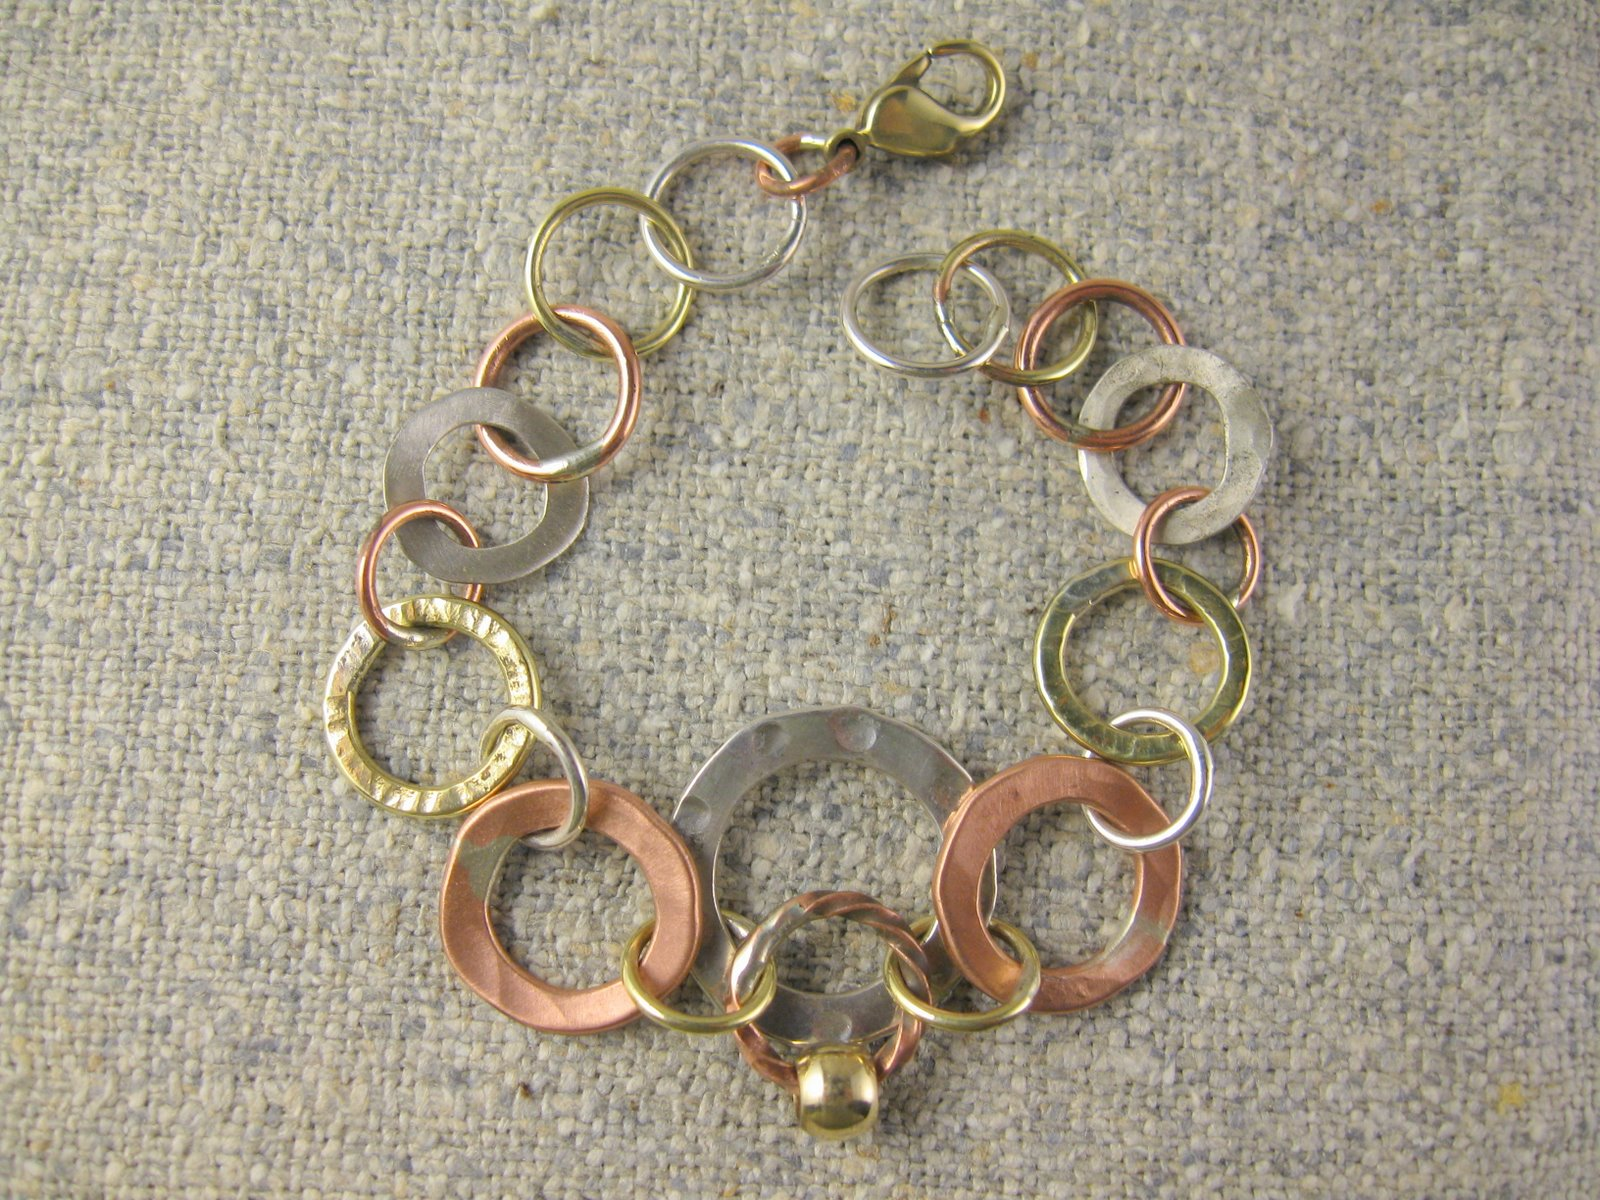 mary ann's chain bracelet